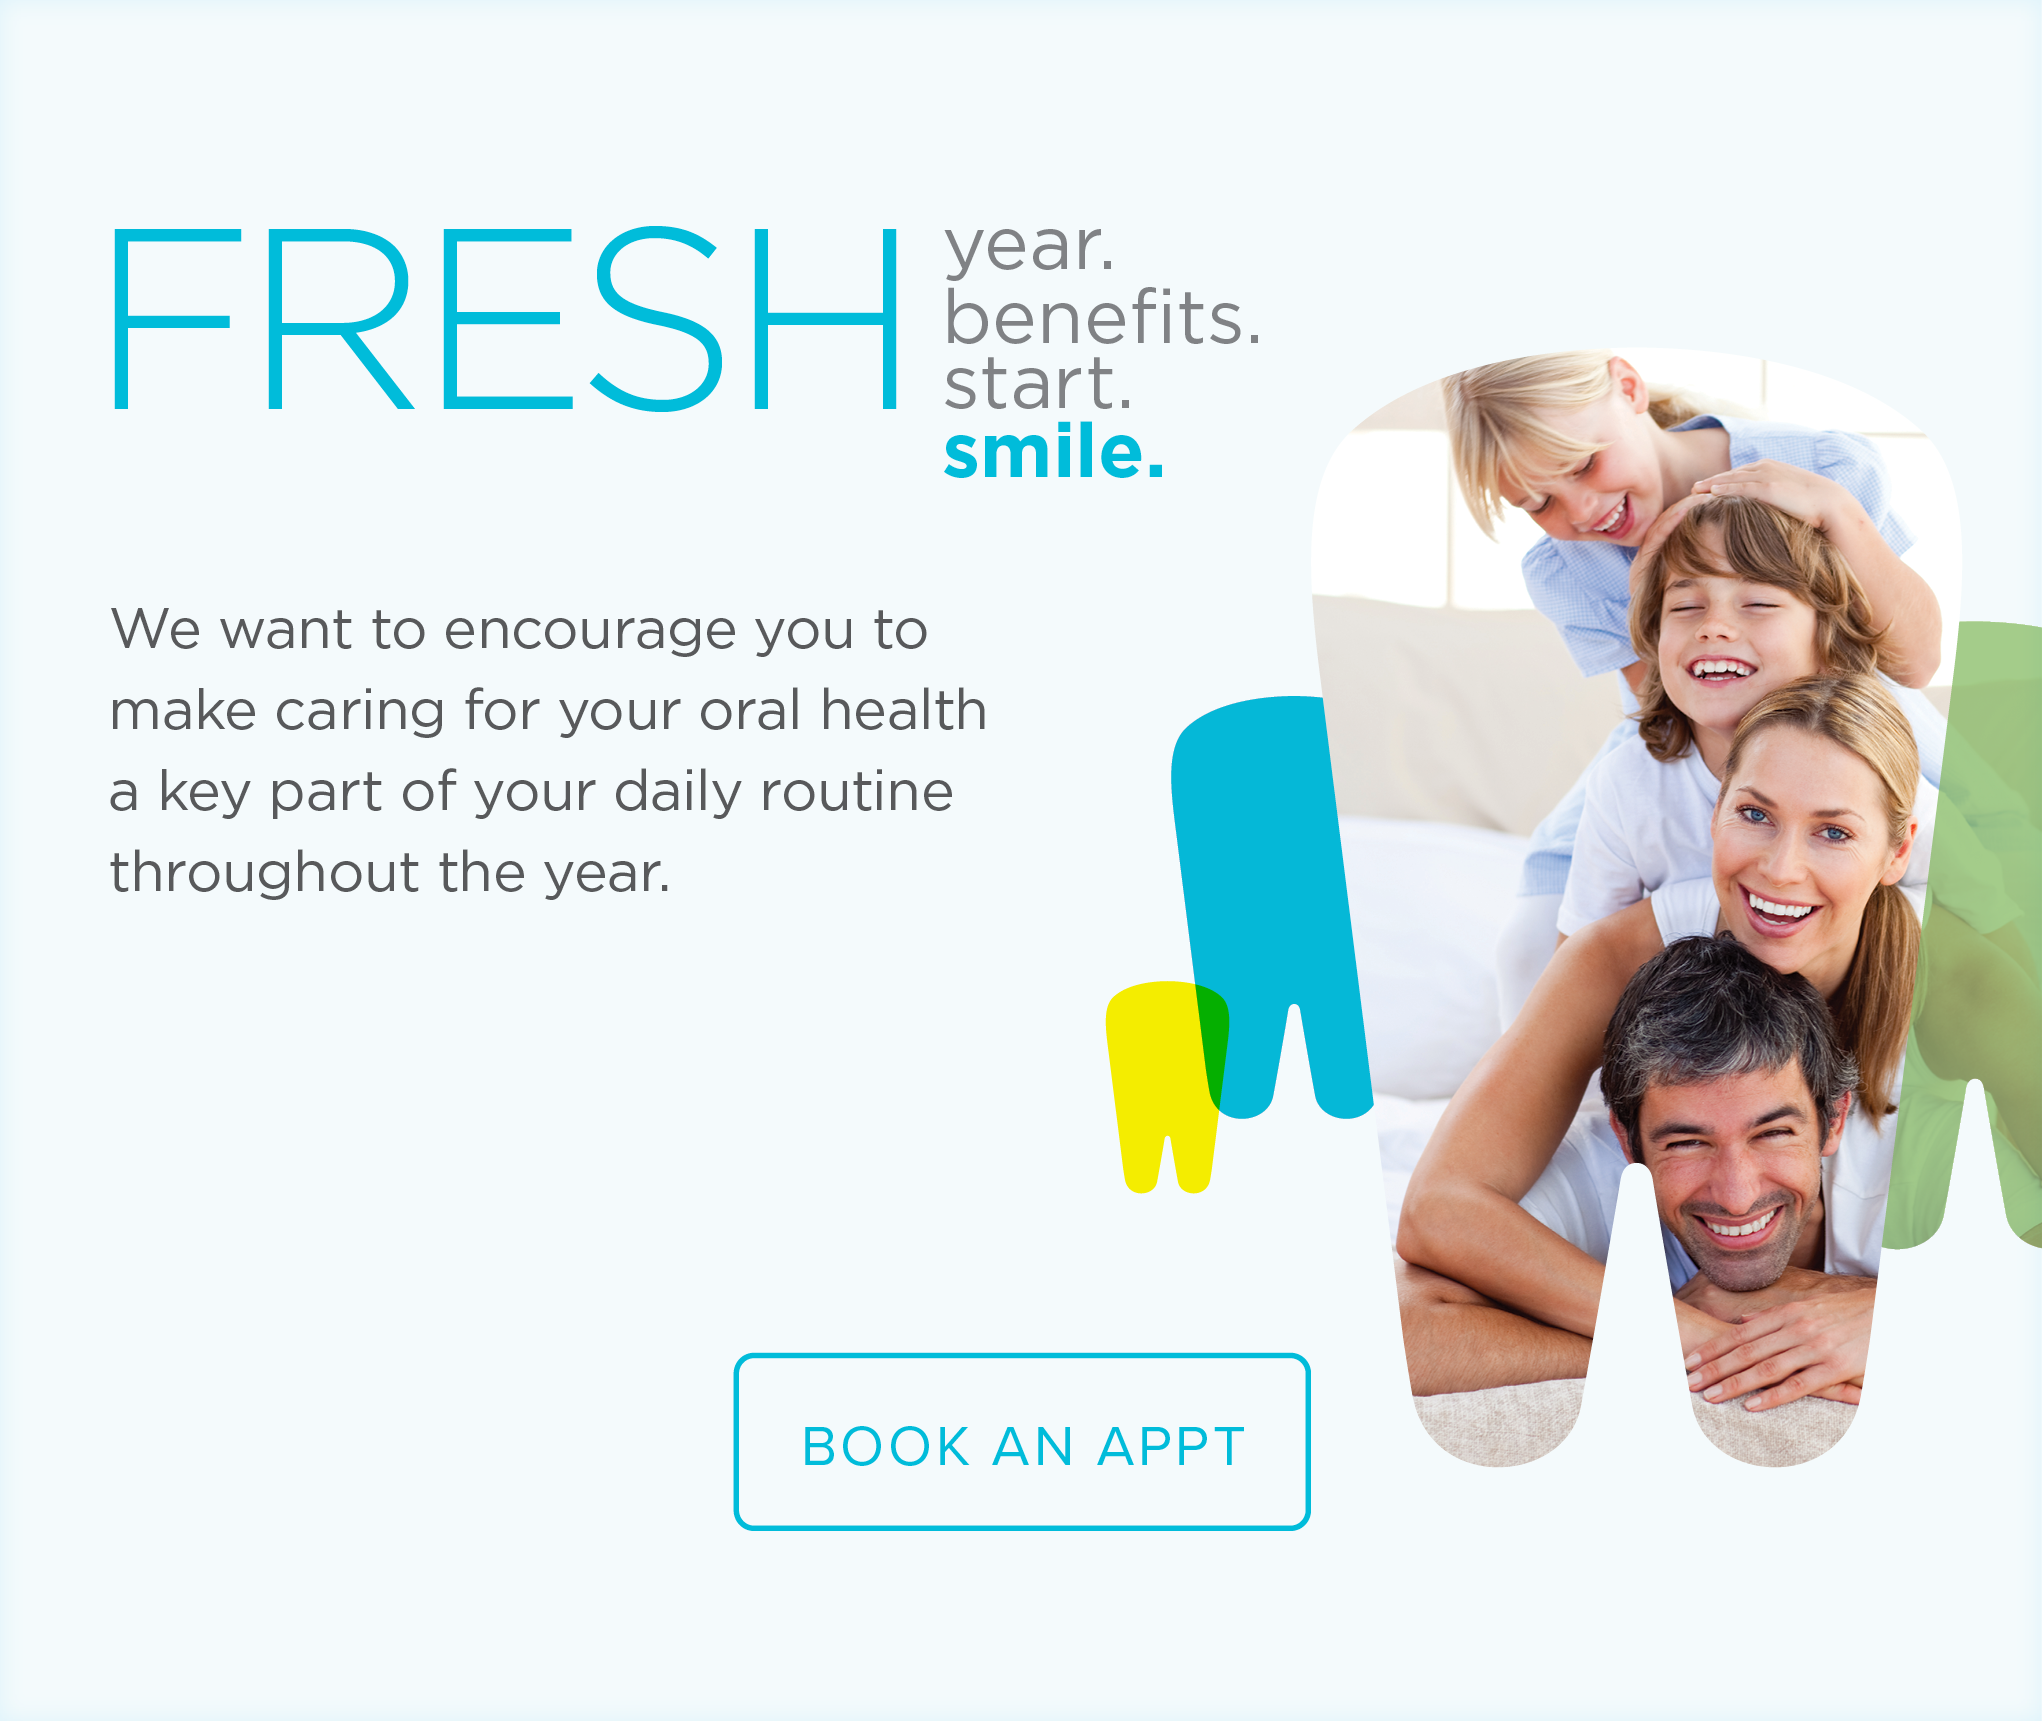 Laveen Modern Dentistry - Make the Most of Your Benefits